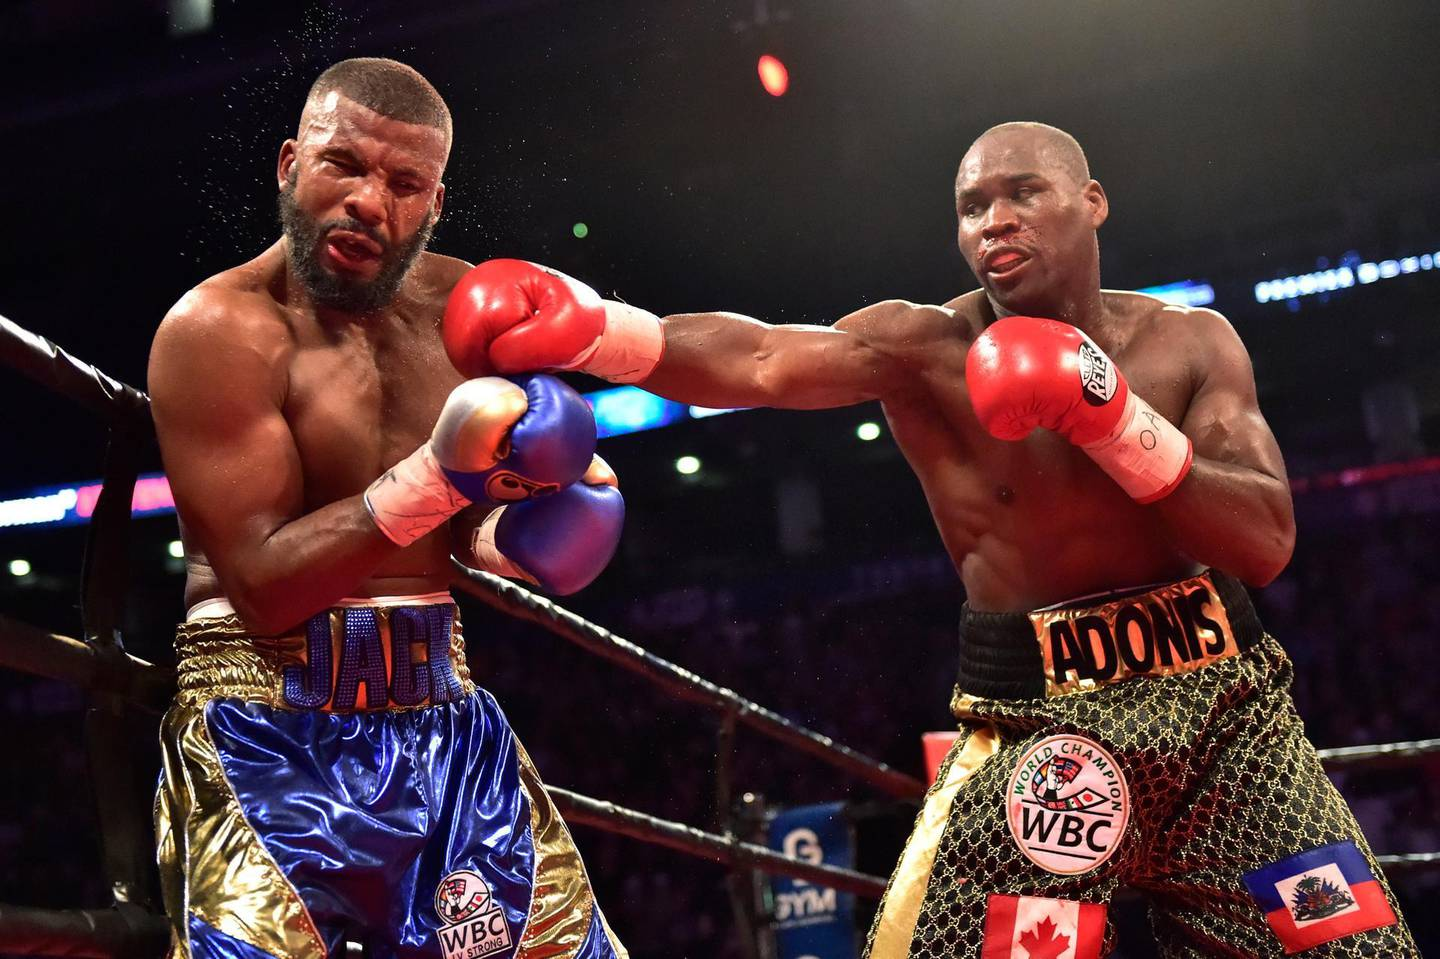 Adonis Stevenson, right, hits Badou Jack with a right during their WBC light heavyweight championship boxing match in Toronto on Saturday, May 19, 2018. (Frank Gunn/The Canadian Press via AP)